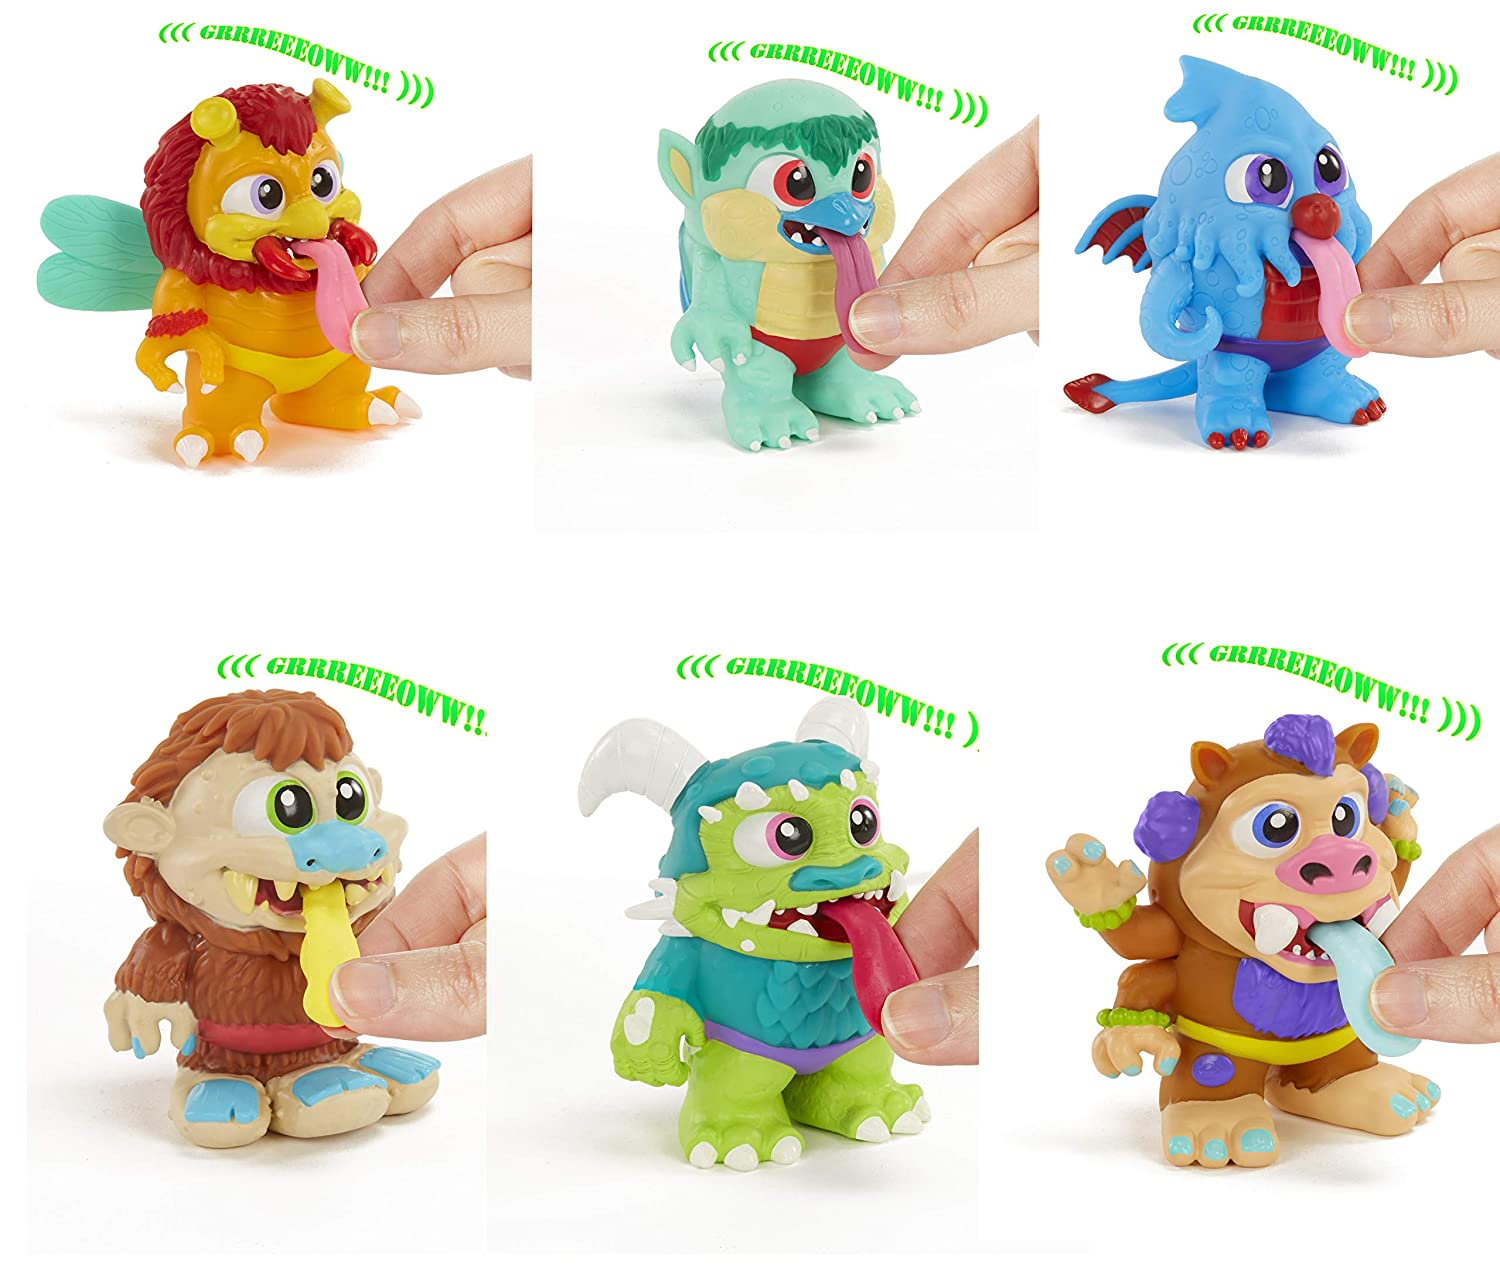 Crate Creatures Surprise Flingers Series 2 Pack of 1, Assorted models MGA Entertainment